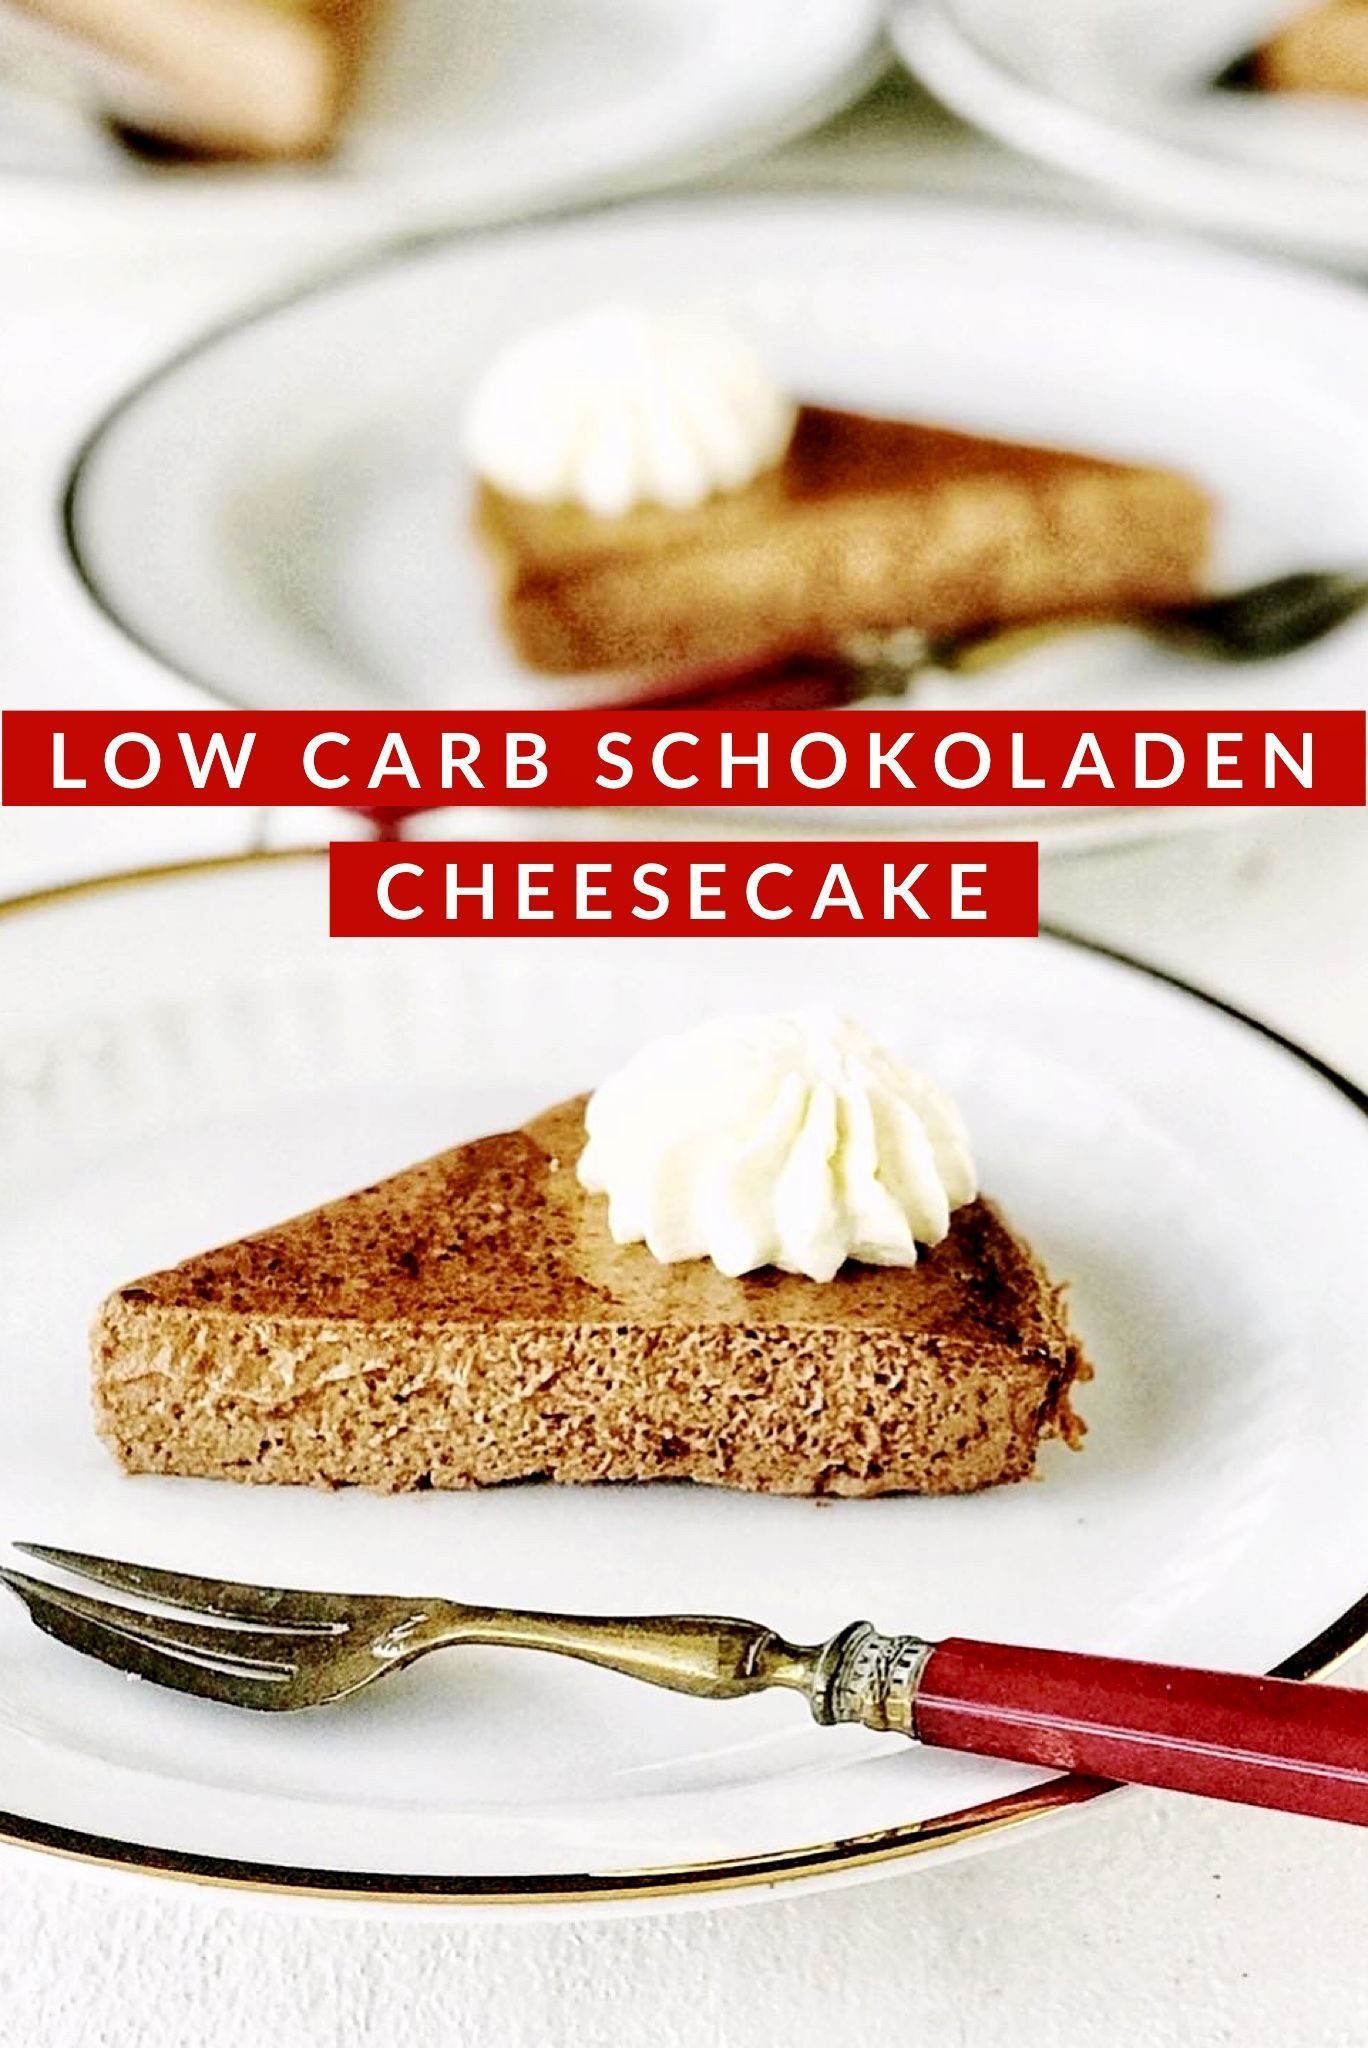 World's best chocolate cheesecake low carb & super simple - Holla the cooking fairy - #cheesecake #chocolate #cooking #holla #simple #super #world - #DelishRecipesAppetizers